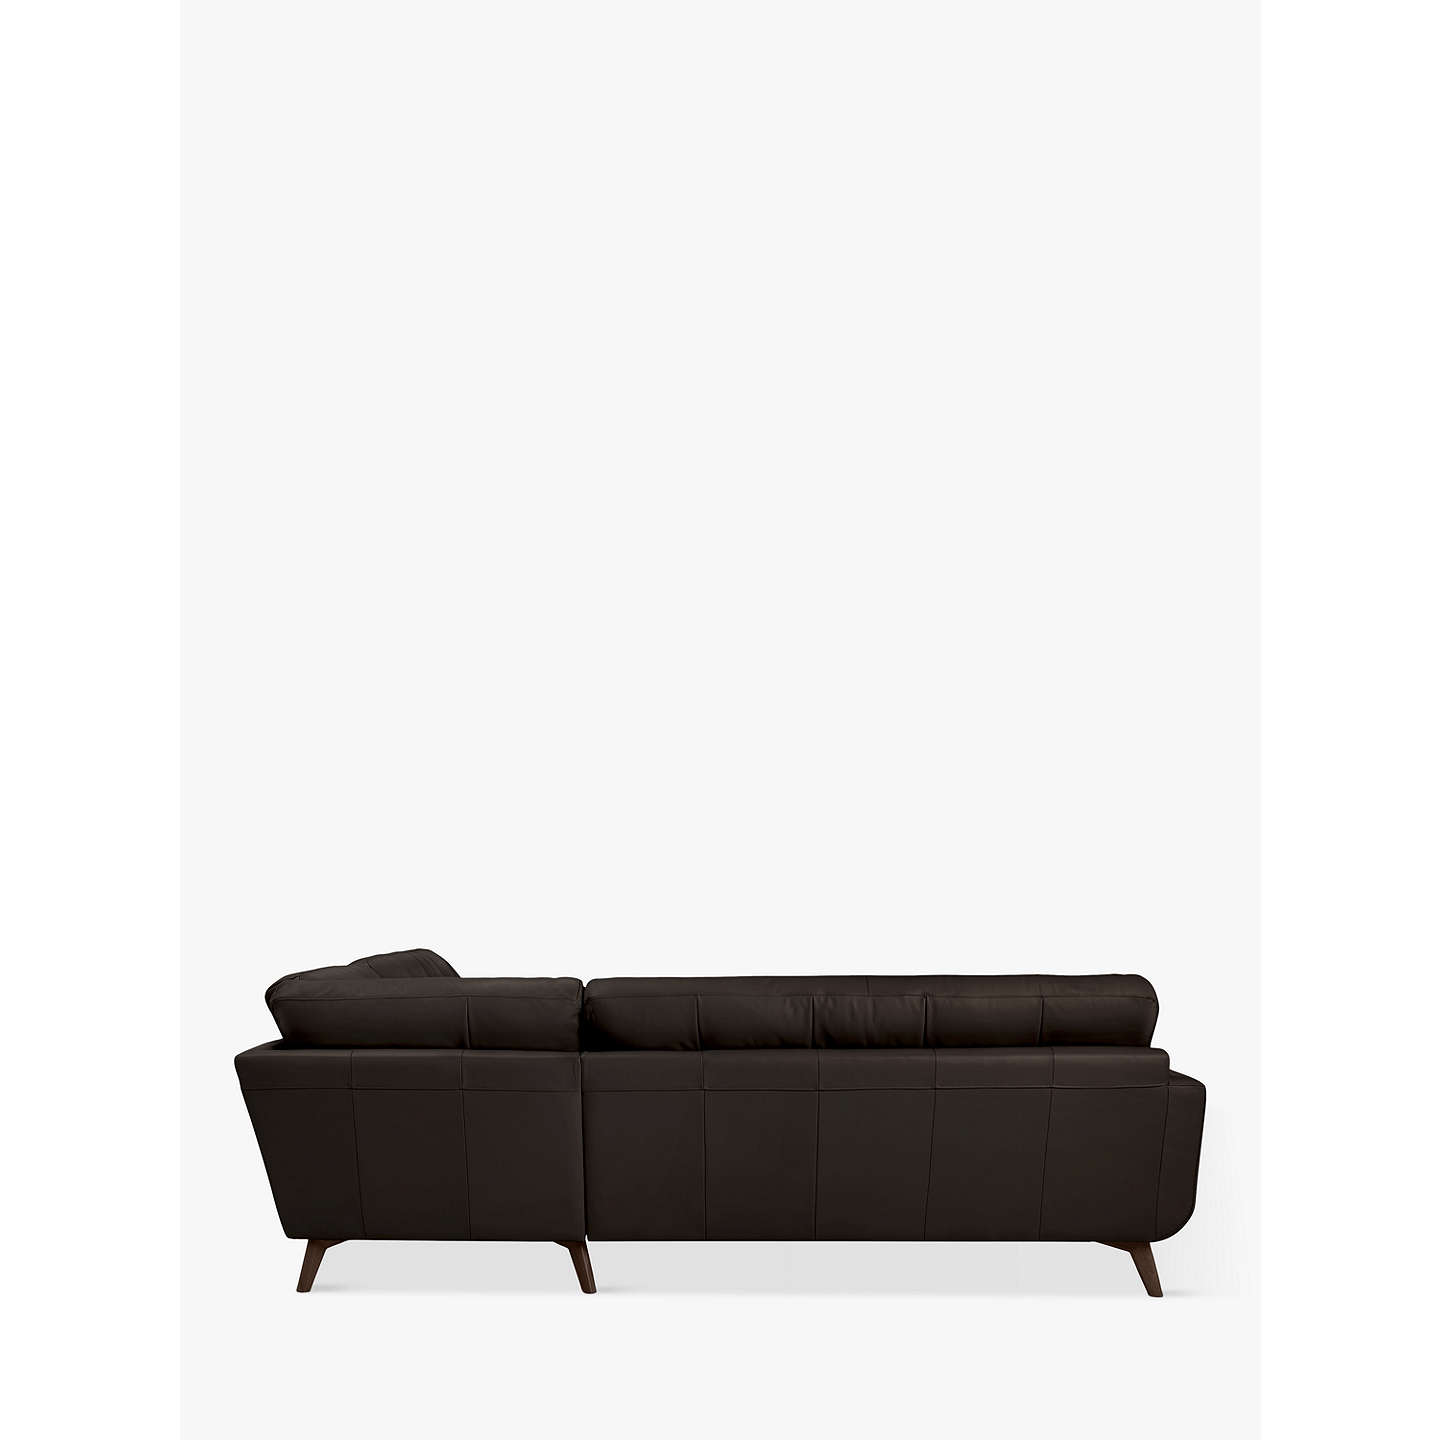 BuyJohn Lewis Barbican Leather RHF Corner End Sofa, Dark Leg, Contempo Dark Chocolate Online at johnlewis.com